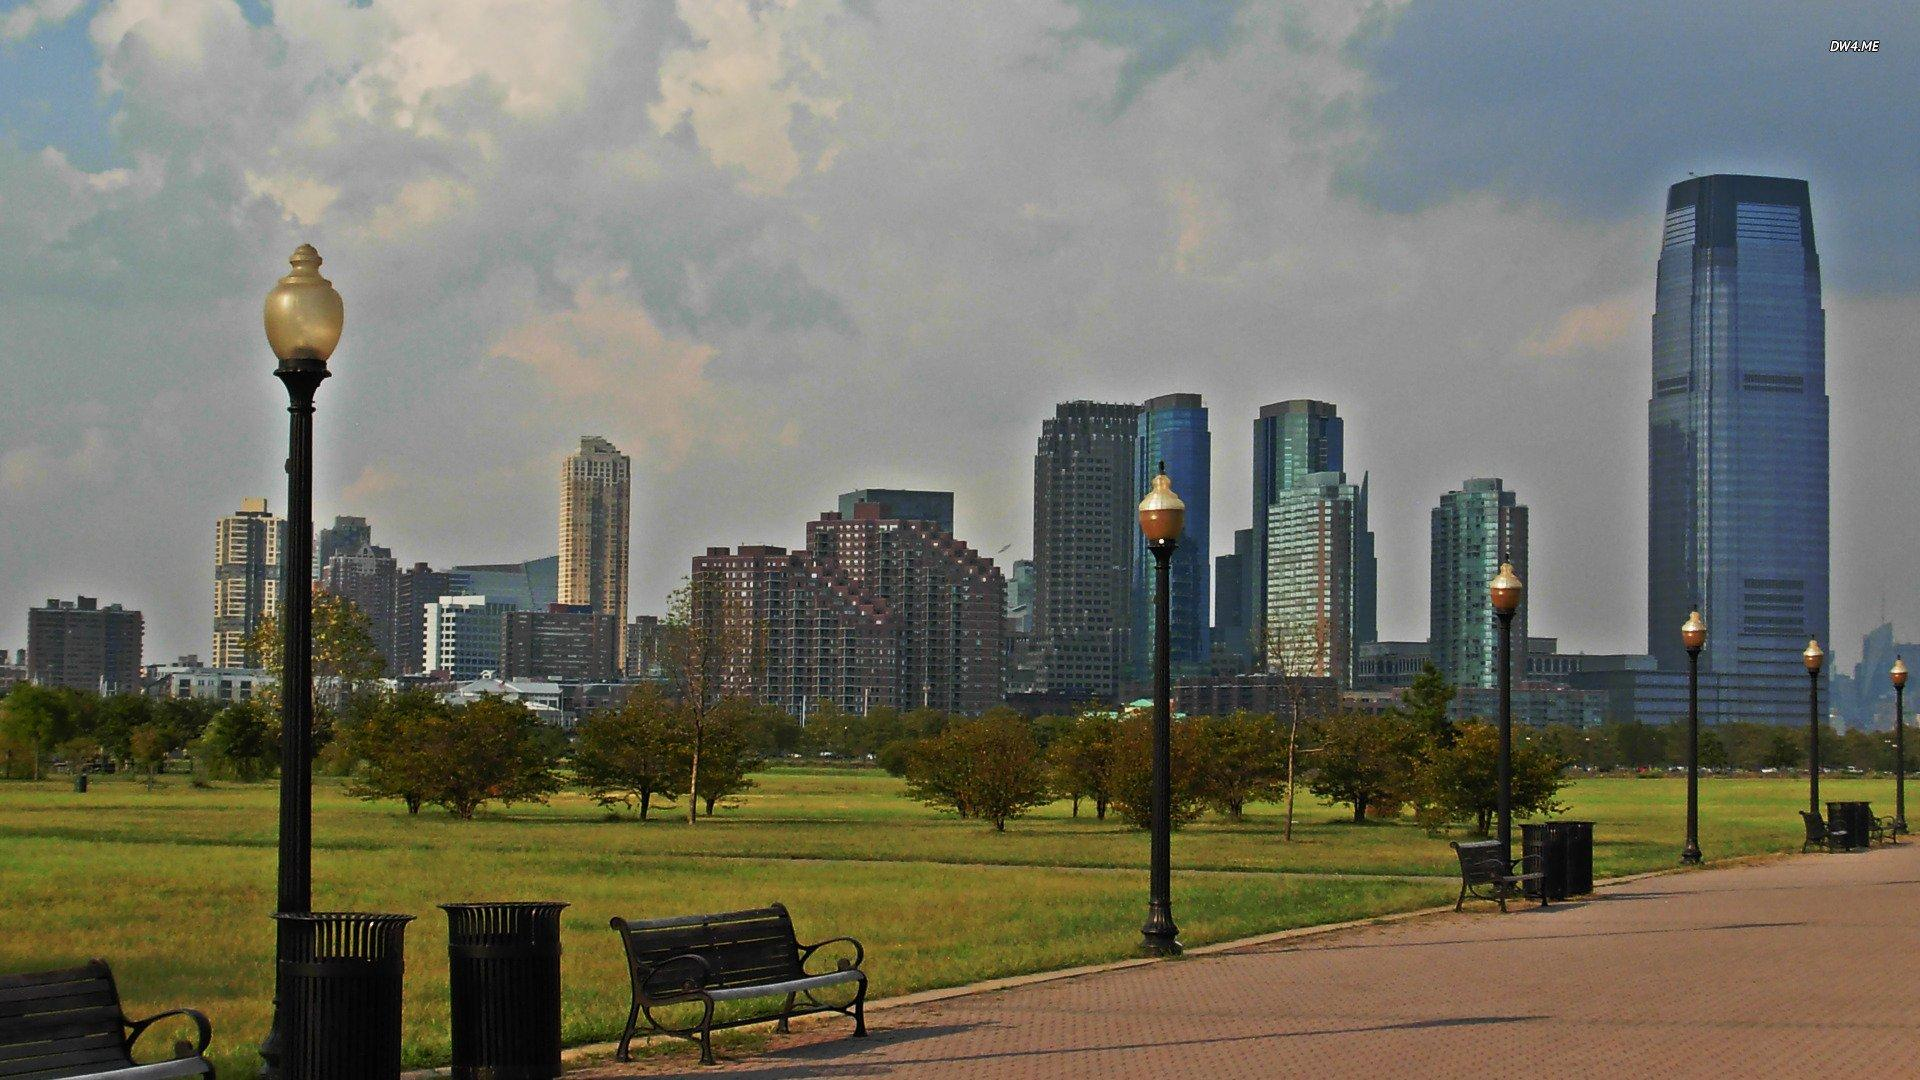 Jersey City Wallpapers and Background Images - stmed.net